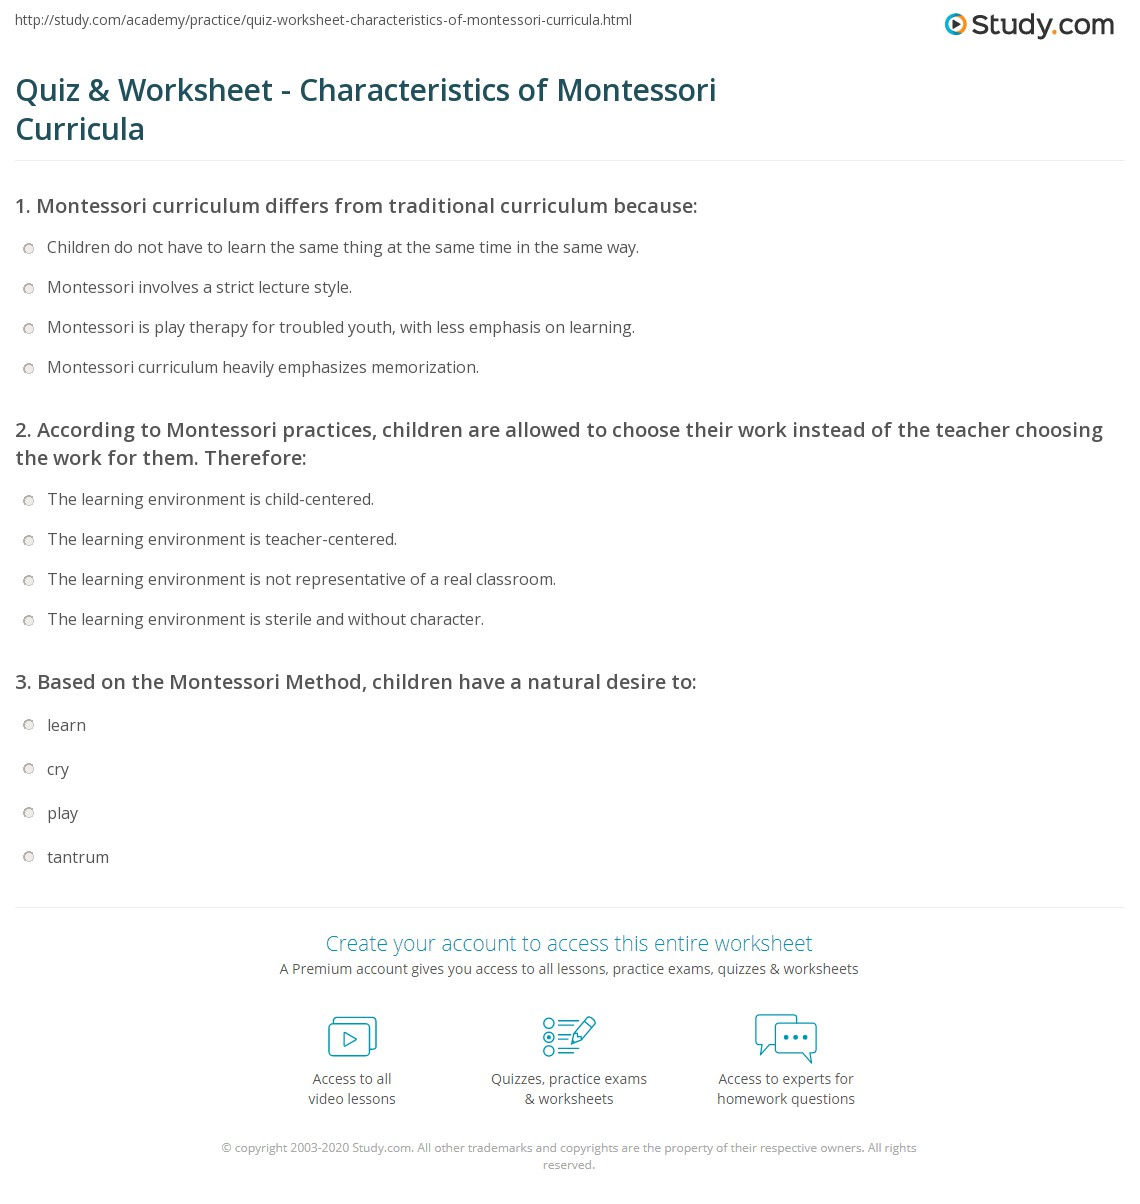 Worksheets Montessori Worksheets generous worksheet print answers kindergarten worksheets to quiz characteristics of montessori curricula study com